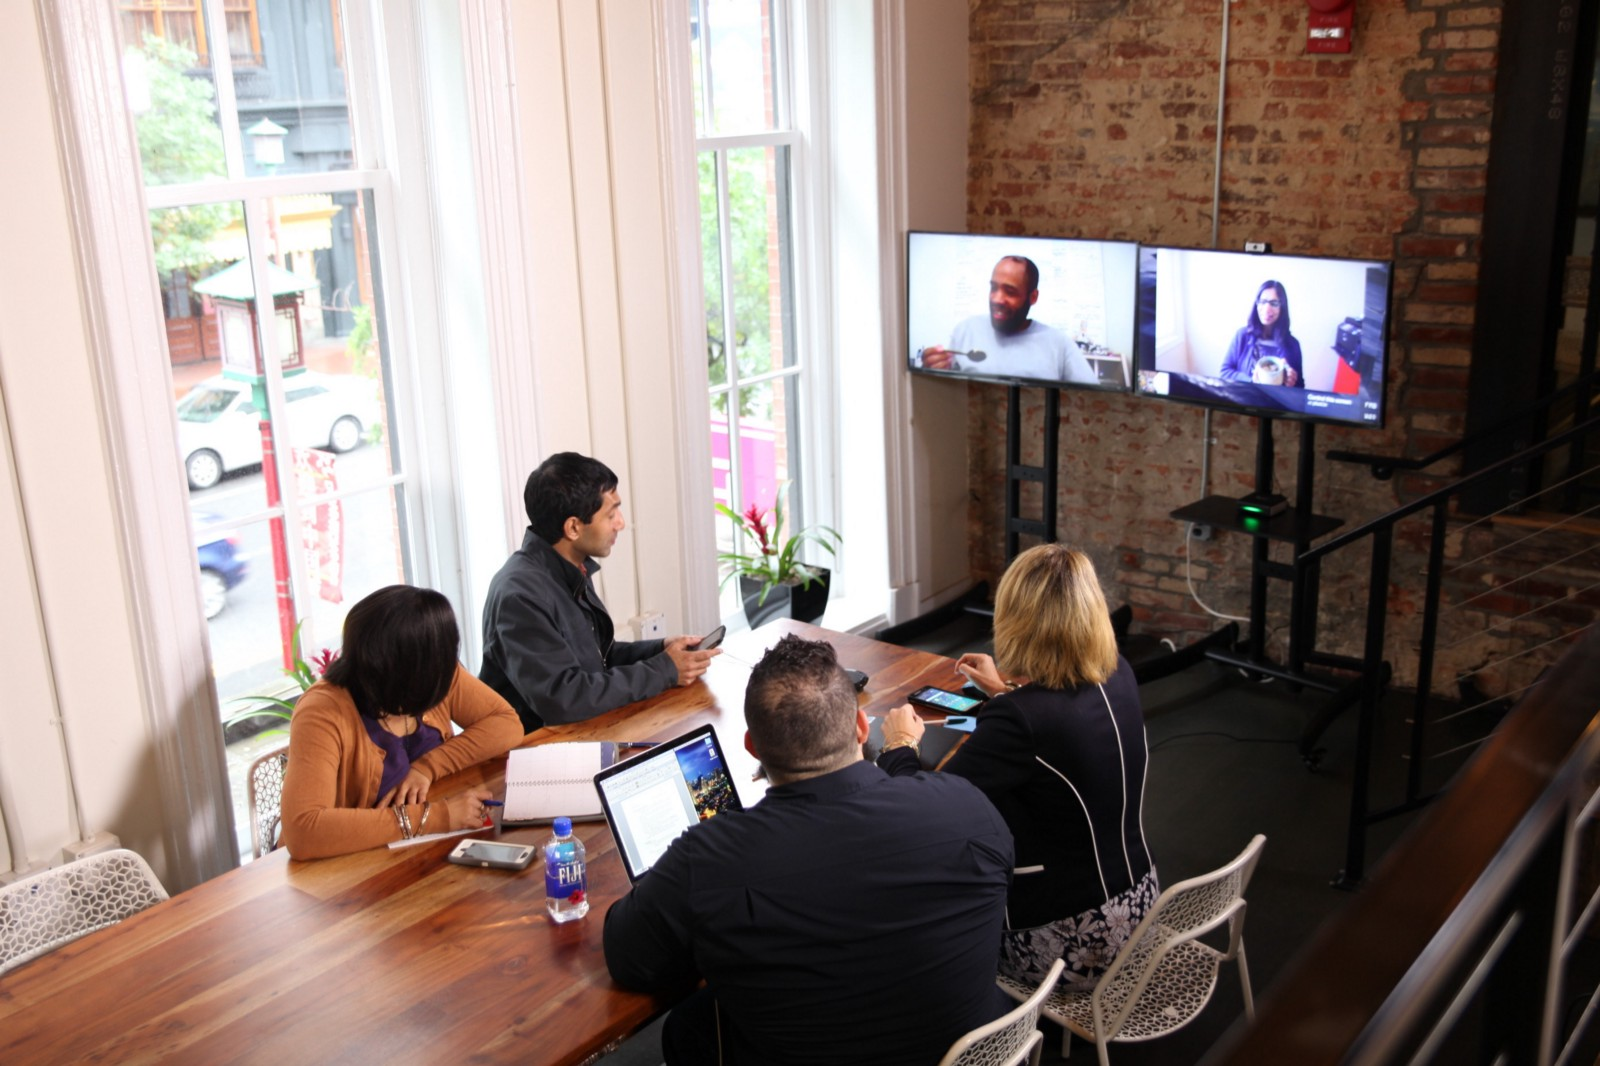 What 4K TV means and video calling uses